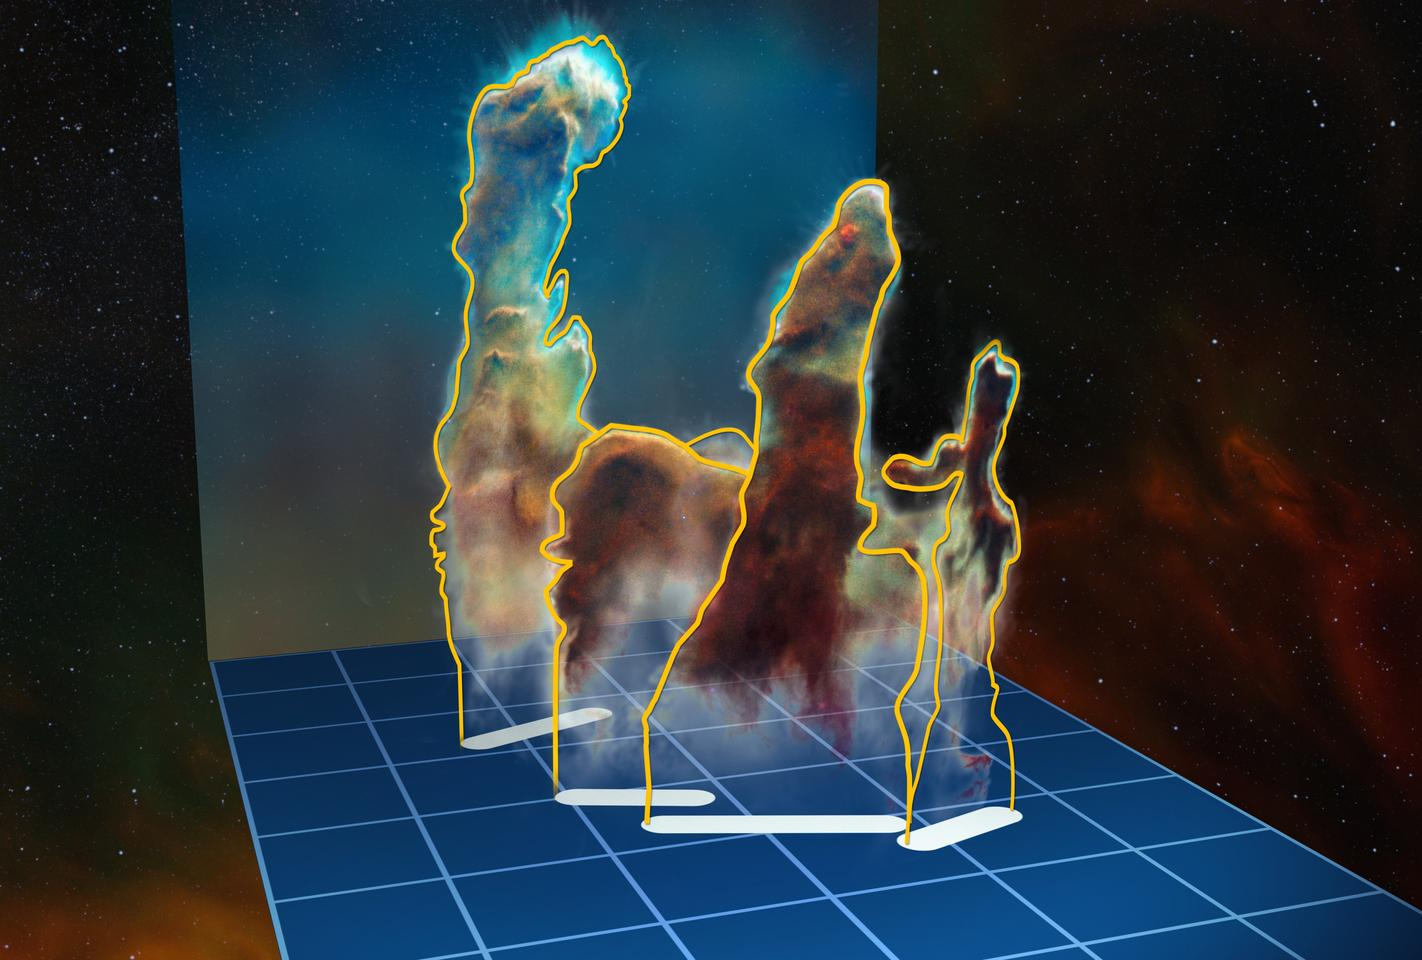 3D visualization of the structure of the iconic Pillars of Creation, constructed from data collected by MUSE and the VLT (Image: ESO, M. Kornmesser)